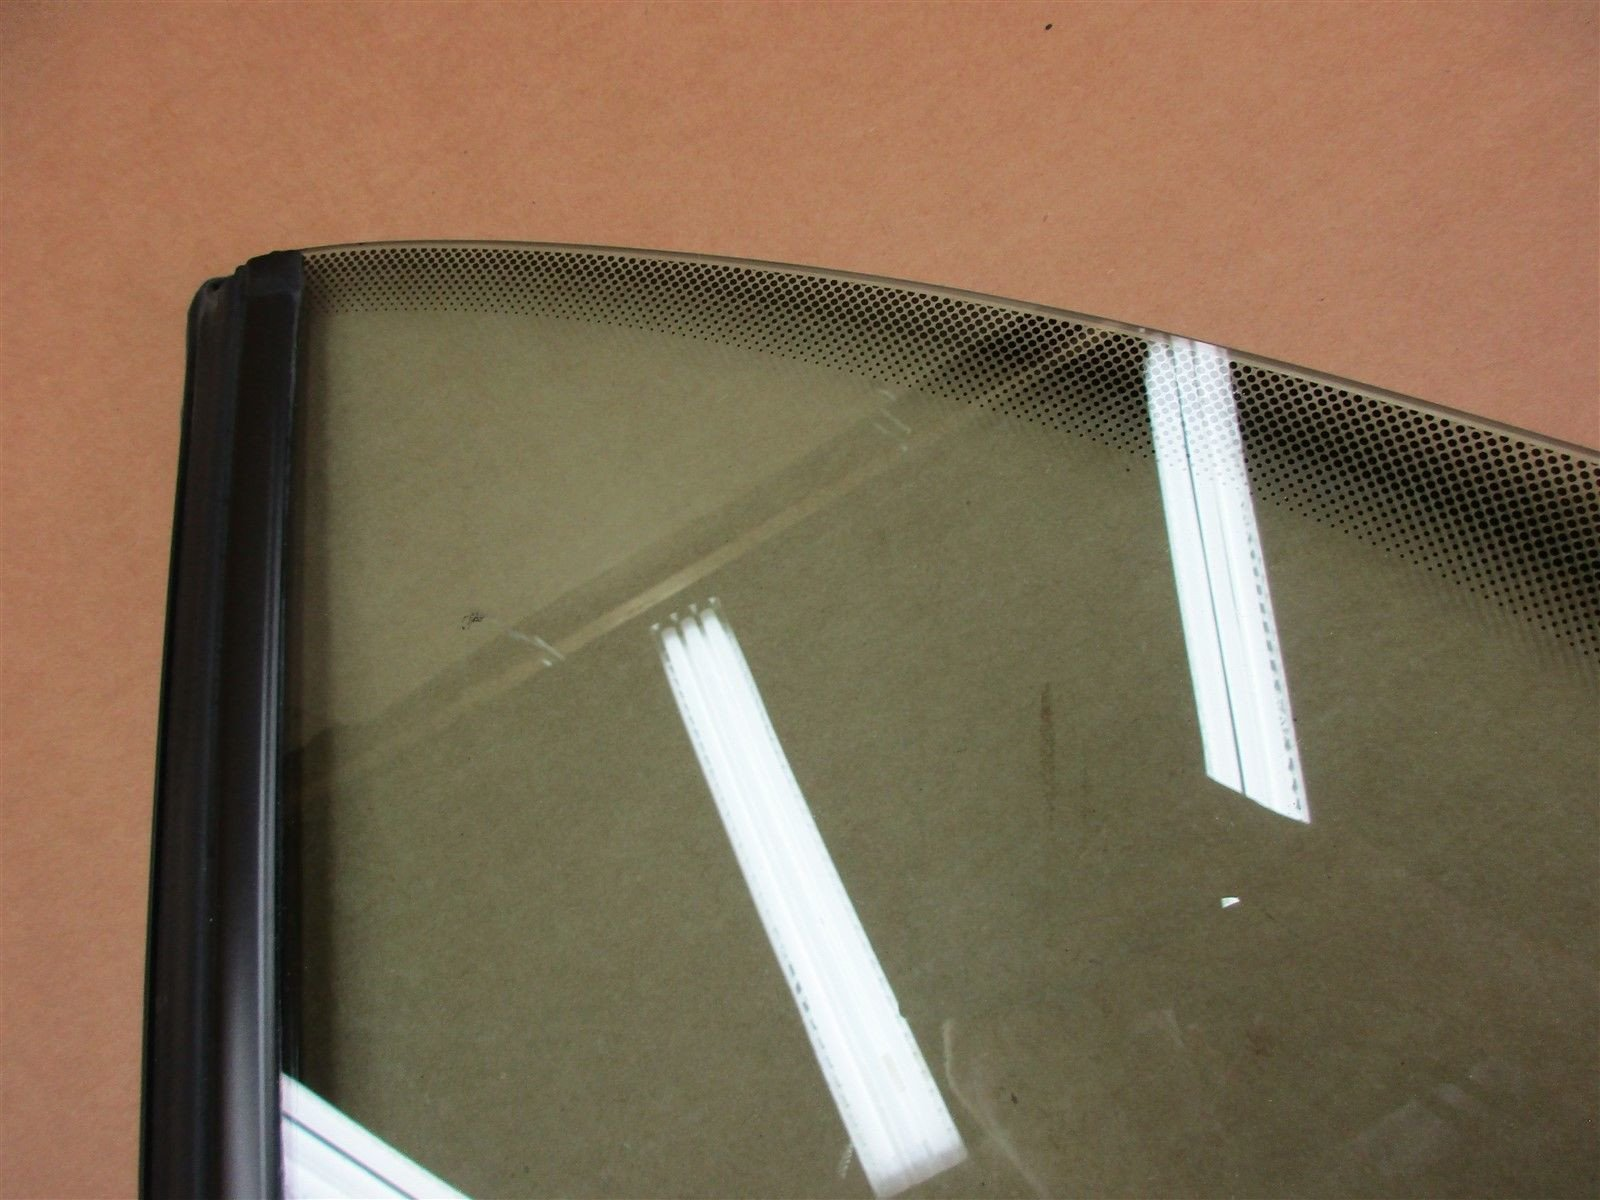 00 Carrera 911 RWD Porsche 996 Cabrio L LEFT REAR QUARTER GLASS WINDOW 163,350